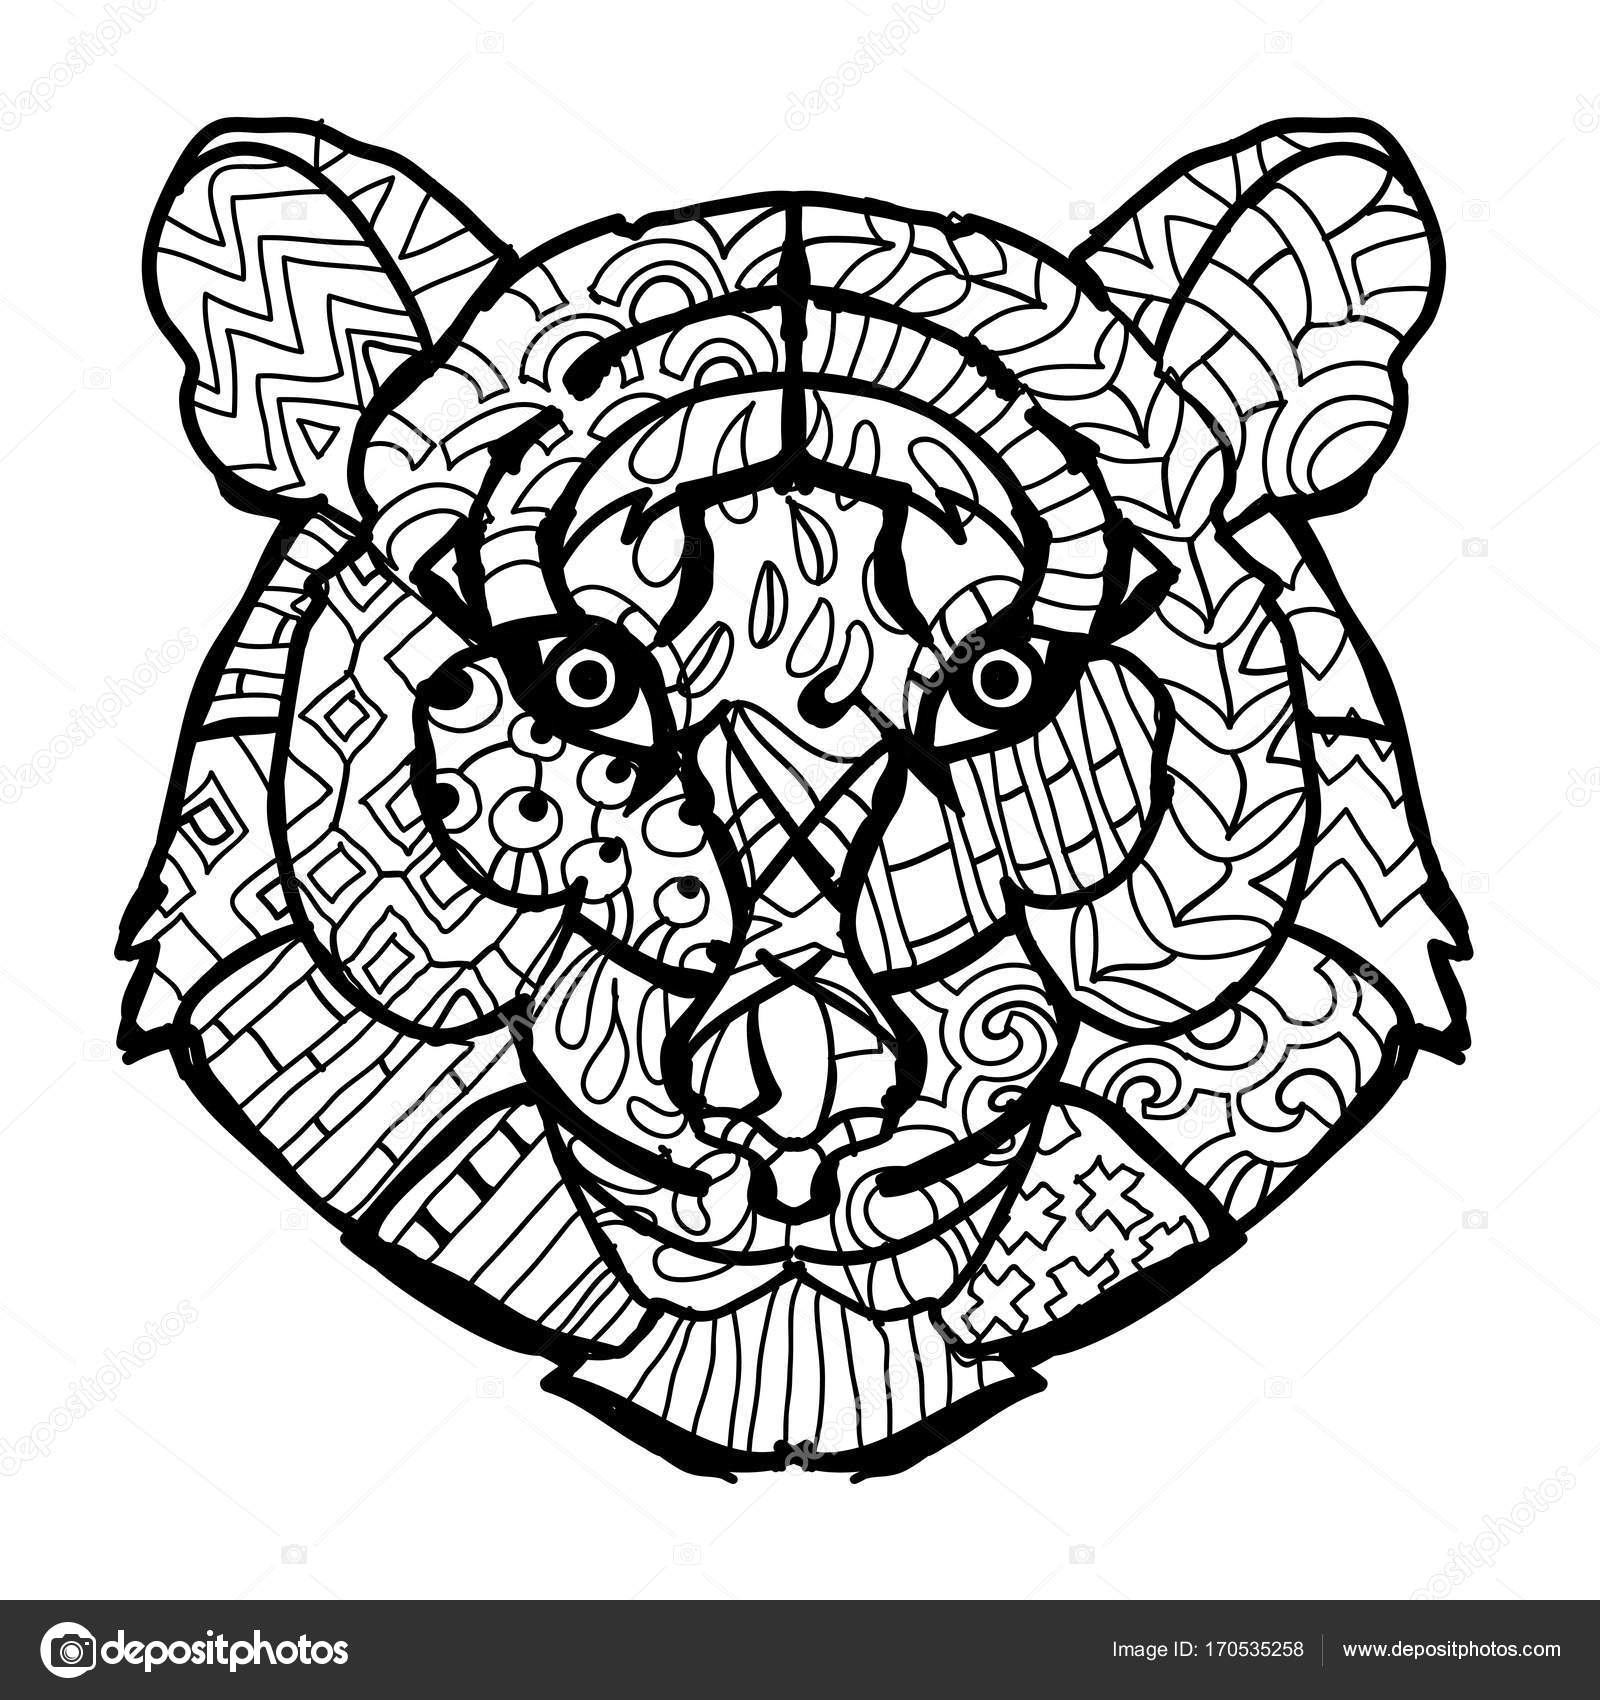 Hand Drawn Doodle Outline Tiger Head Decorated With OrnamentsVector Zen Art IllustrationFloral OrnamentSketch For Tattoo Or Coloring PagesBoho Style